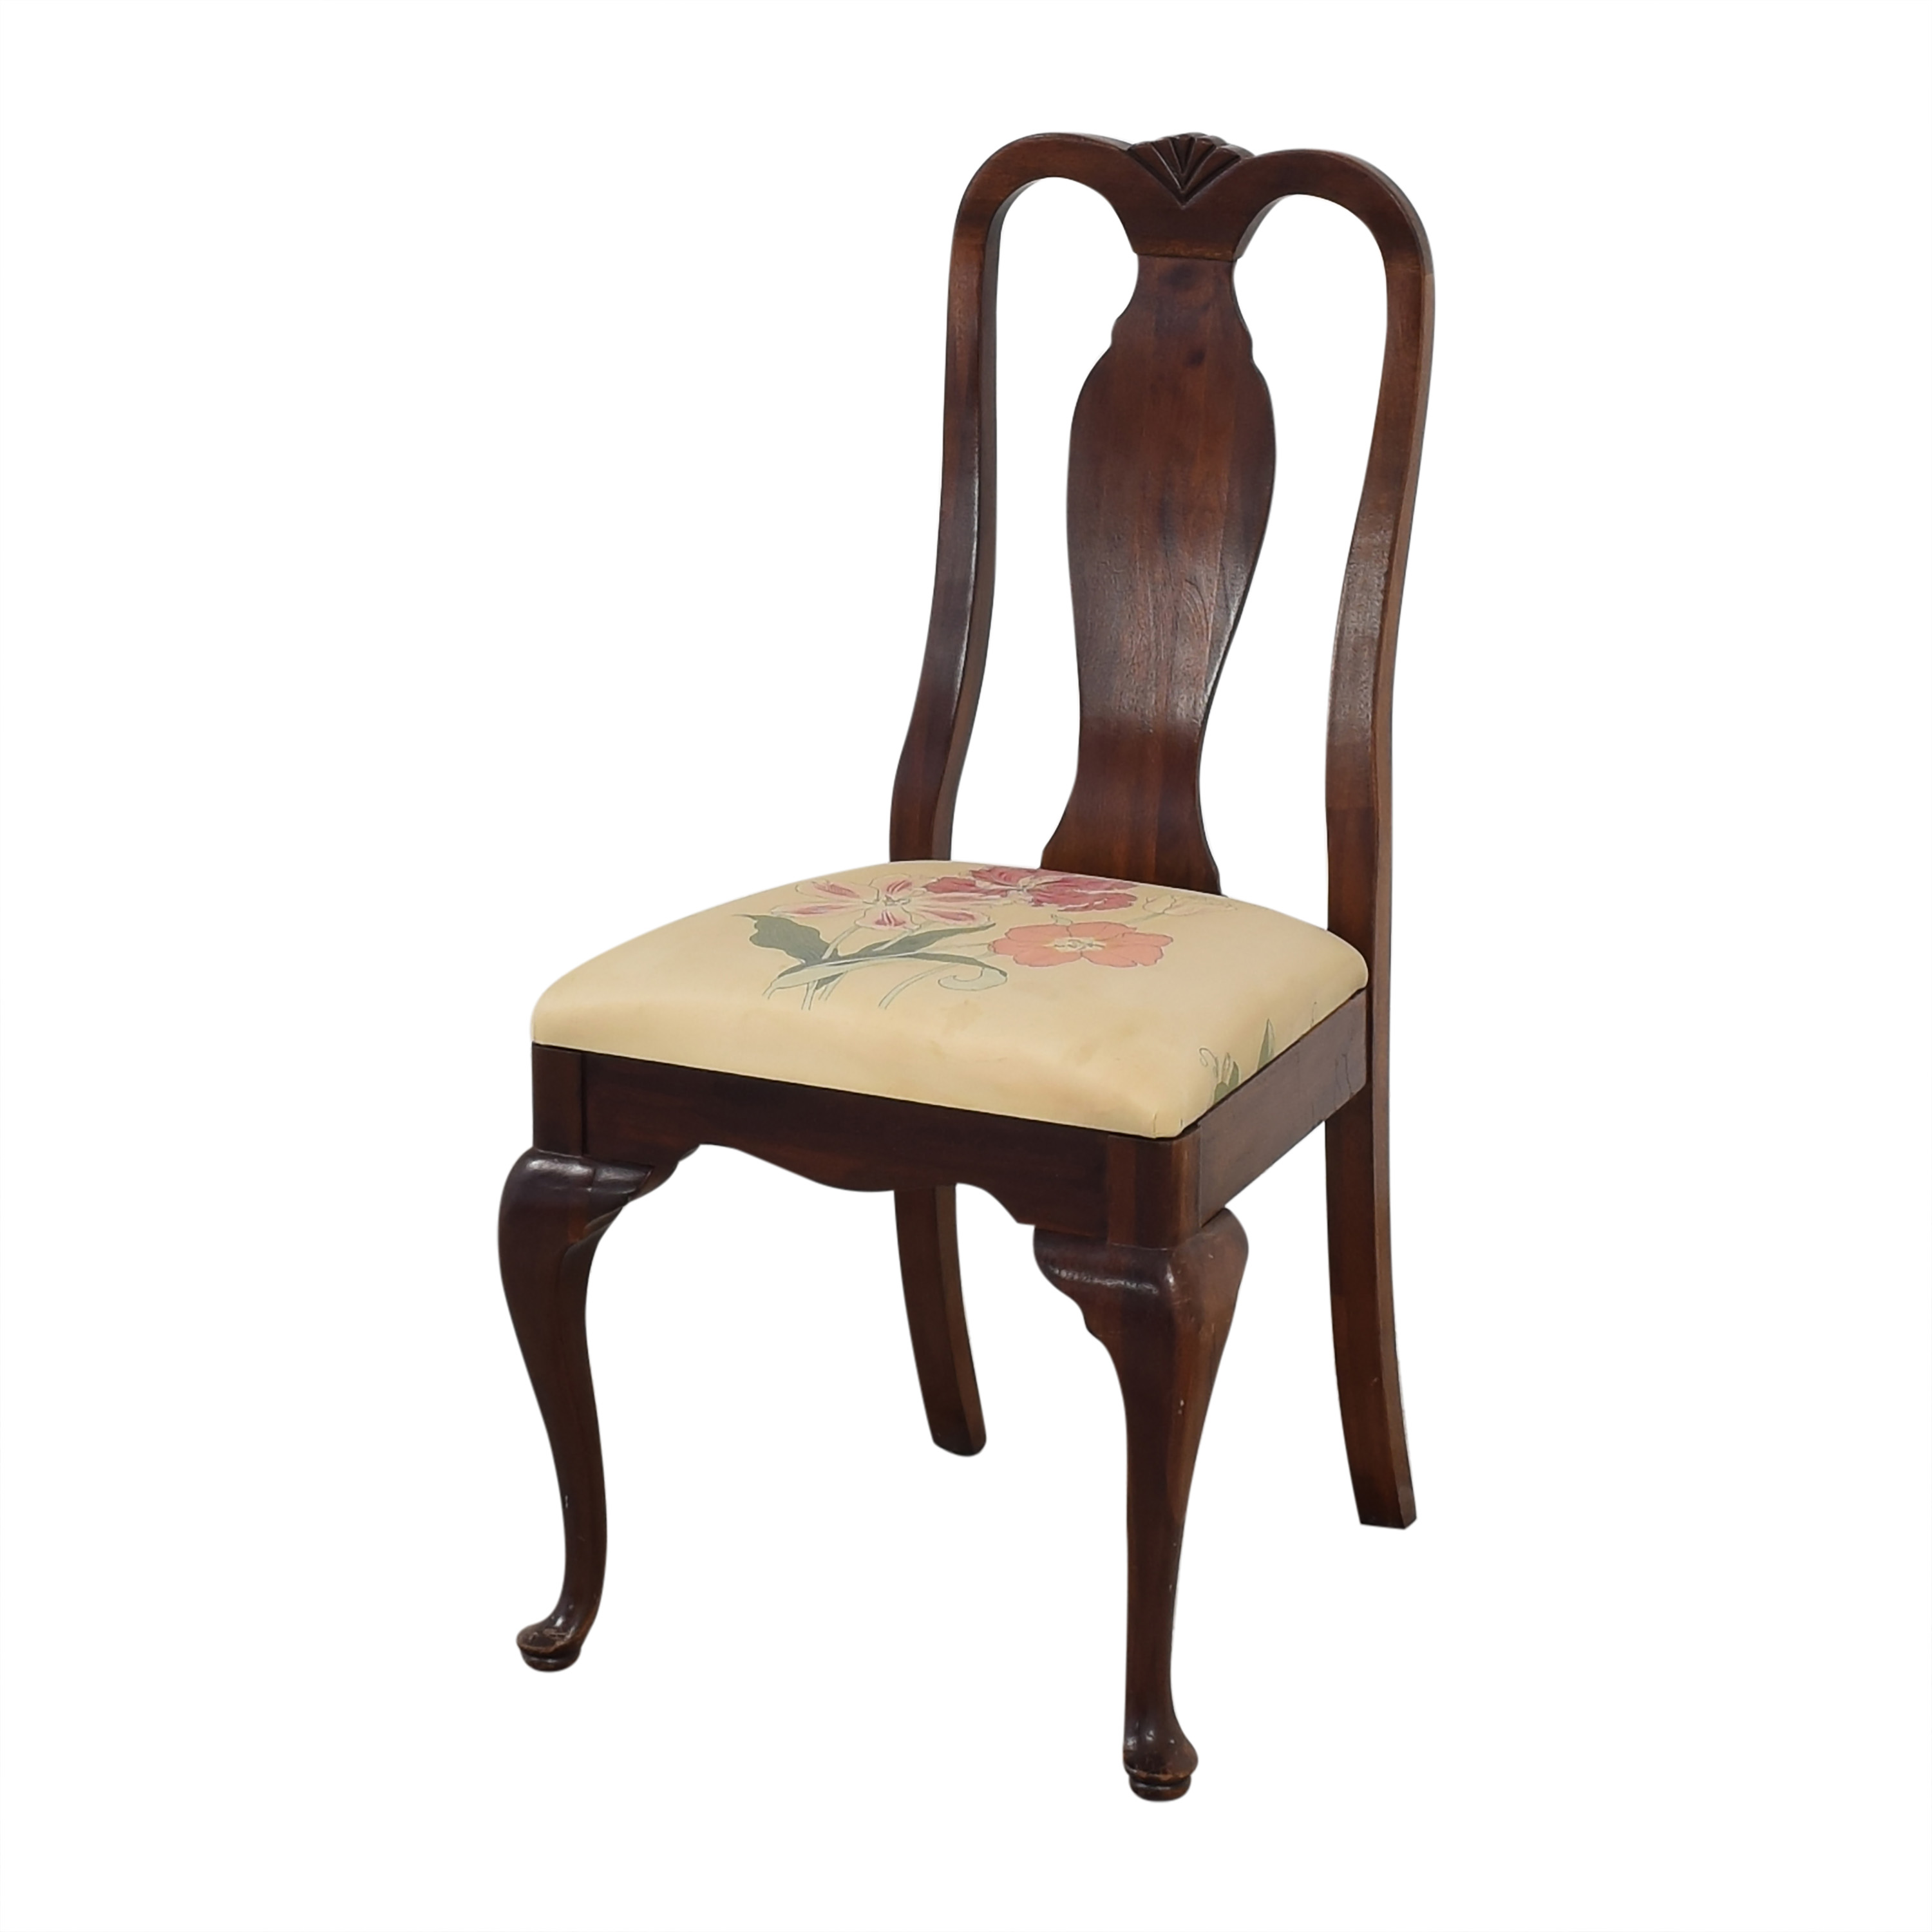 Davis Cabinet Company Davis Cabinet Company Dining Chairs price